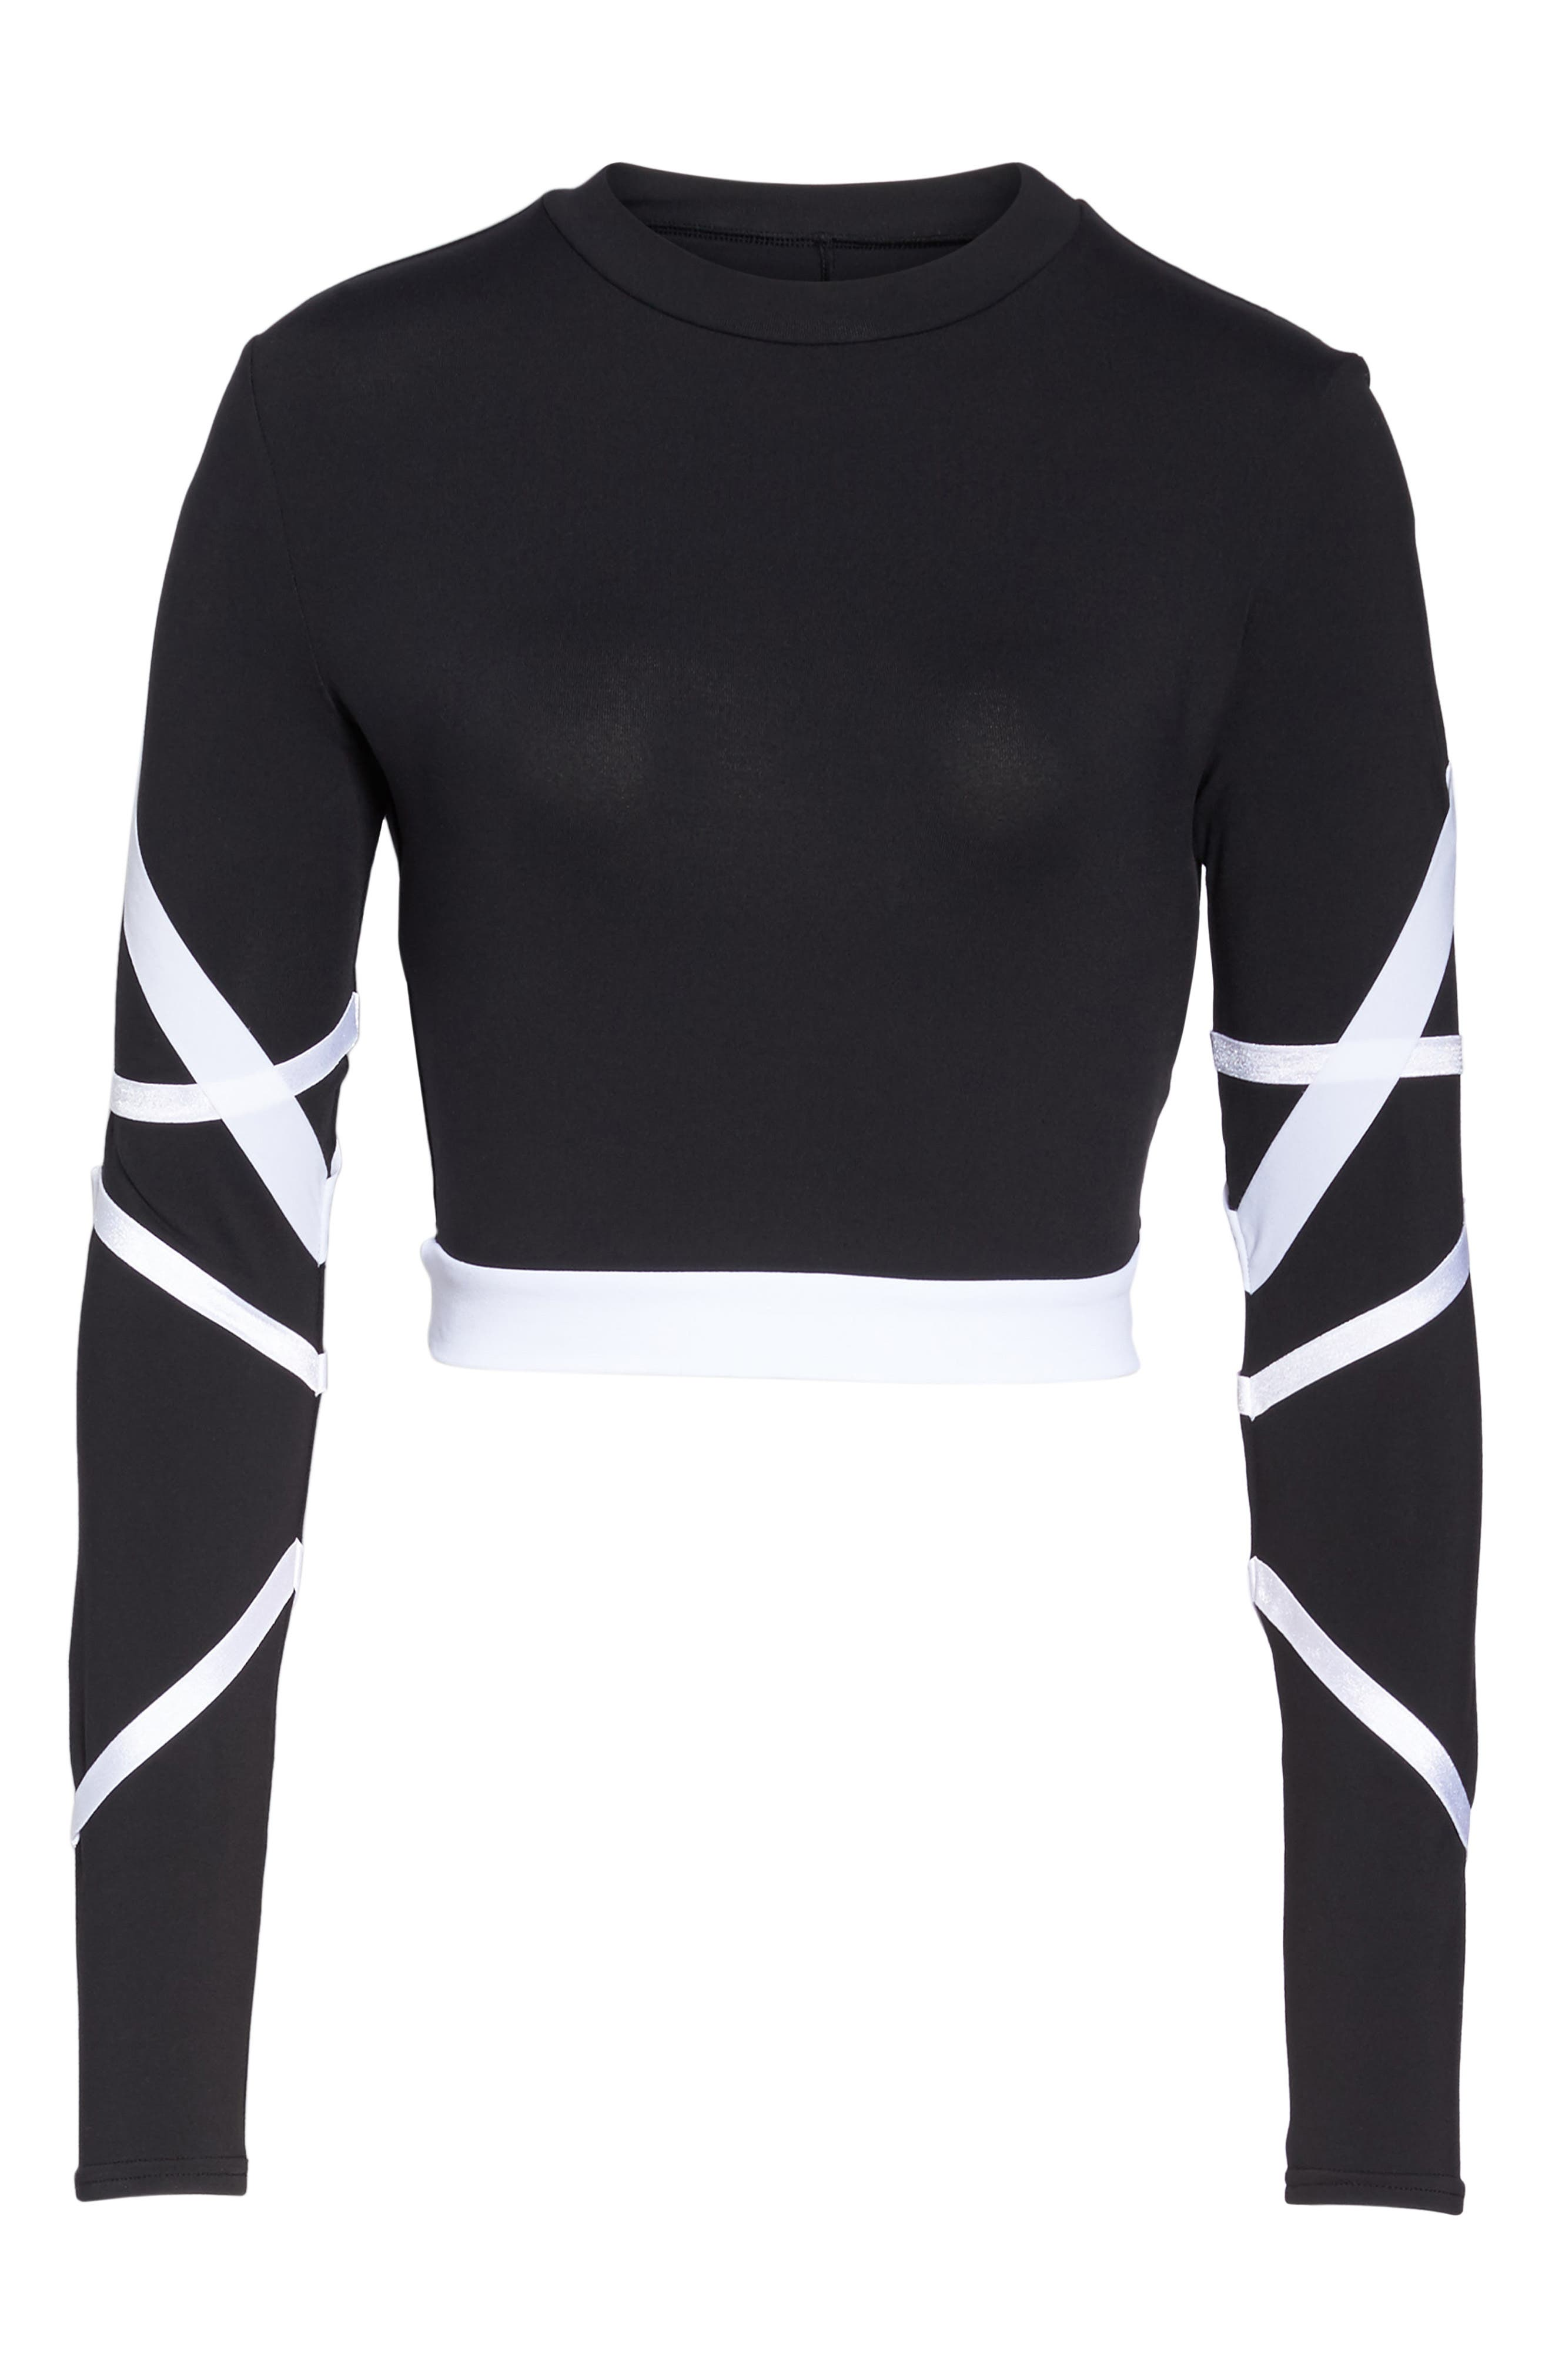 Tribe Long Sleeve Top,                             Alternate thumbnail 18, color,